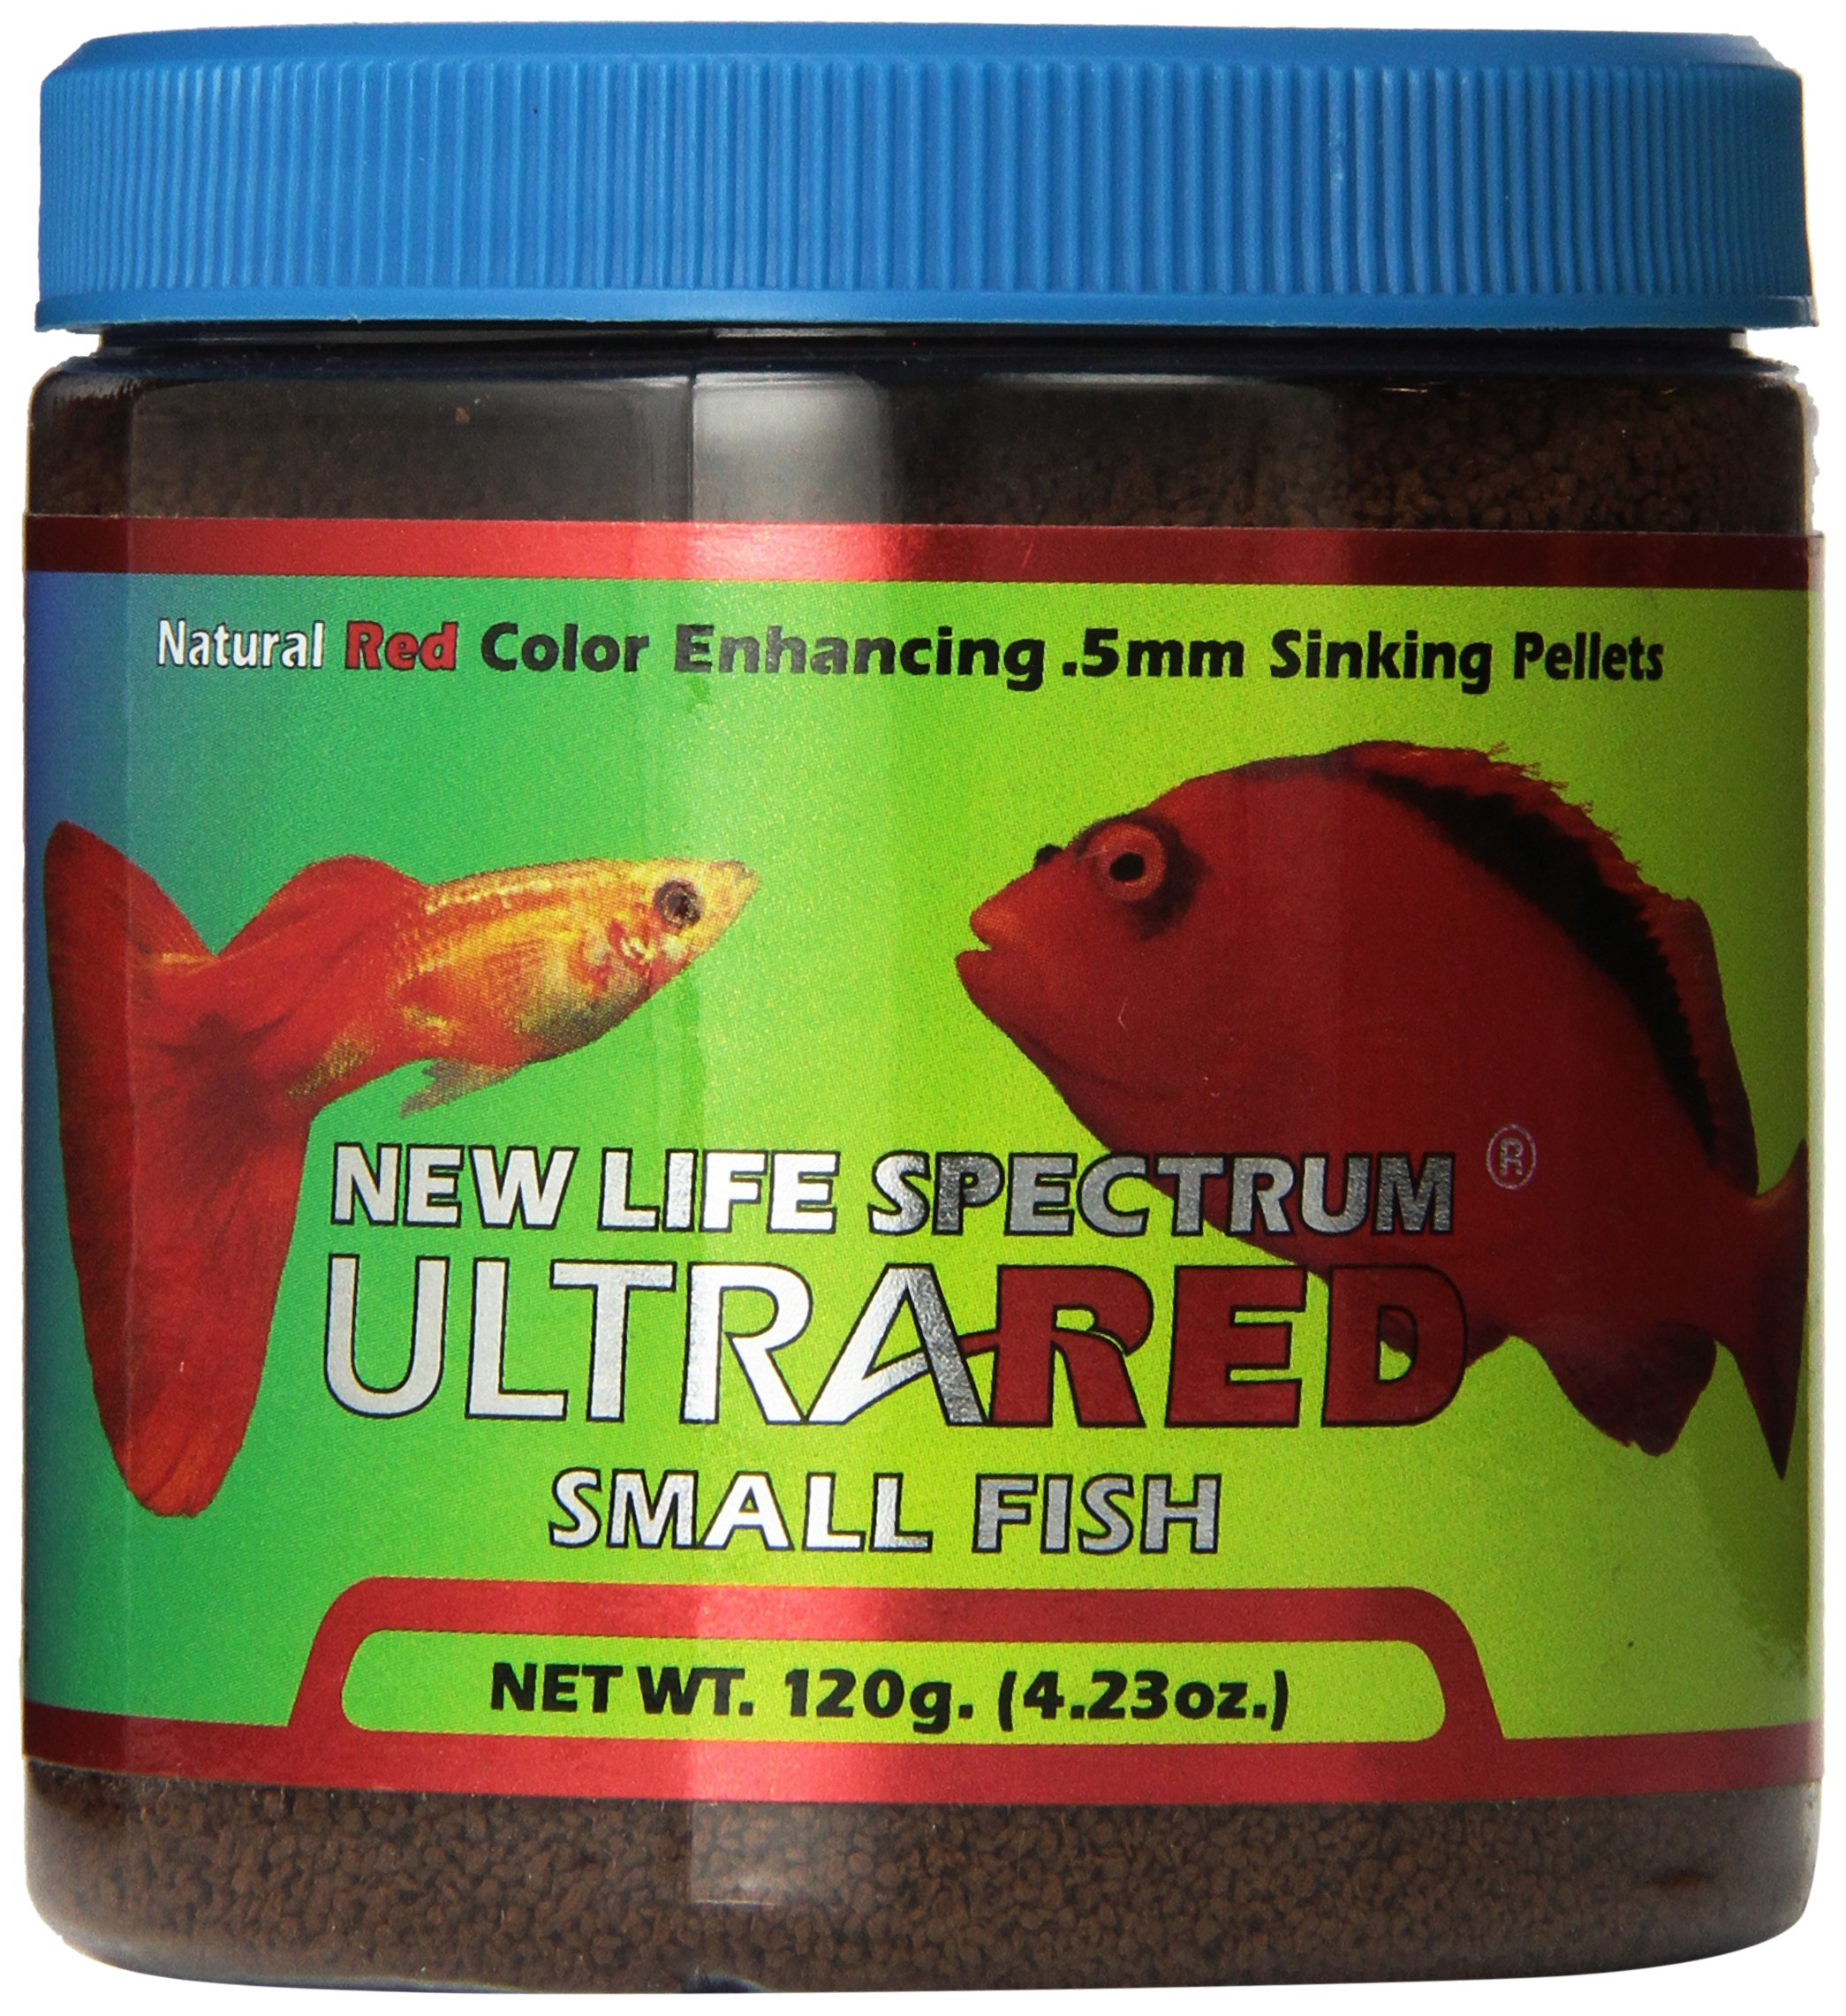 New Life Spectrum UltraRED Small Red Enhancer 0.5mm Sinking Pet Food, 120gm